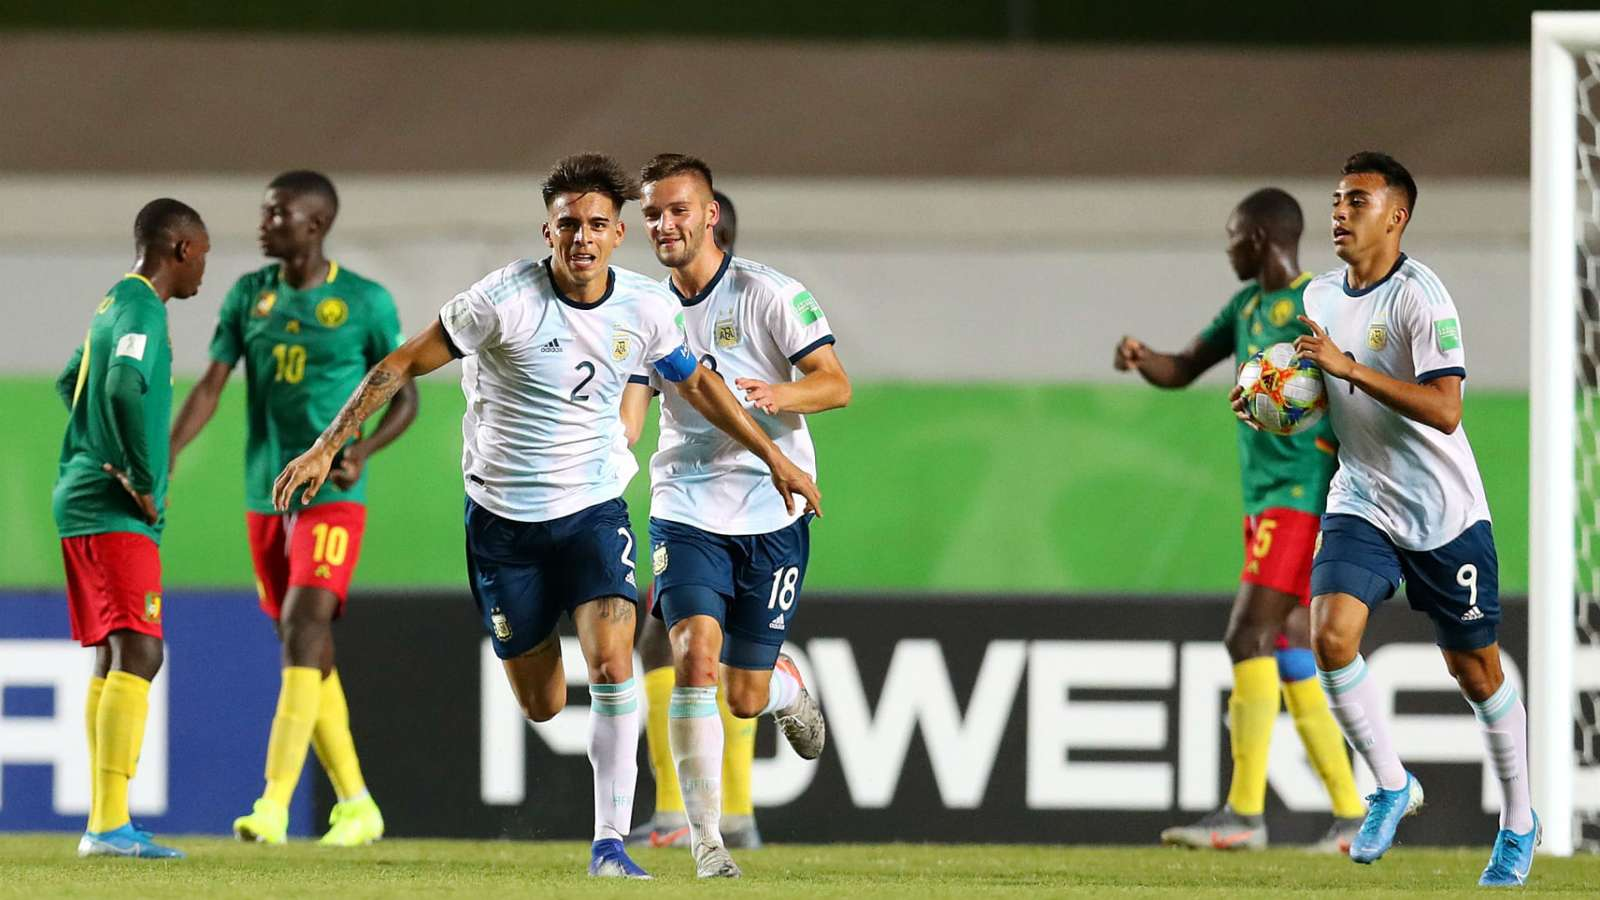 U17 World Cup: Cameroon sent packing after losing to Spain